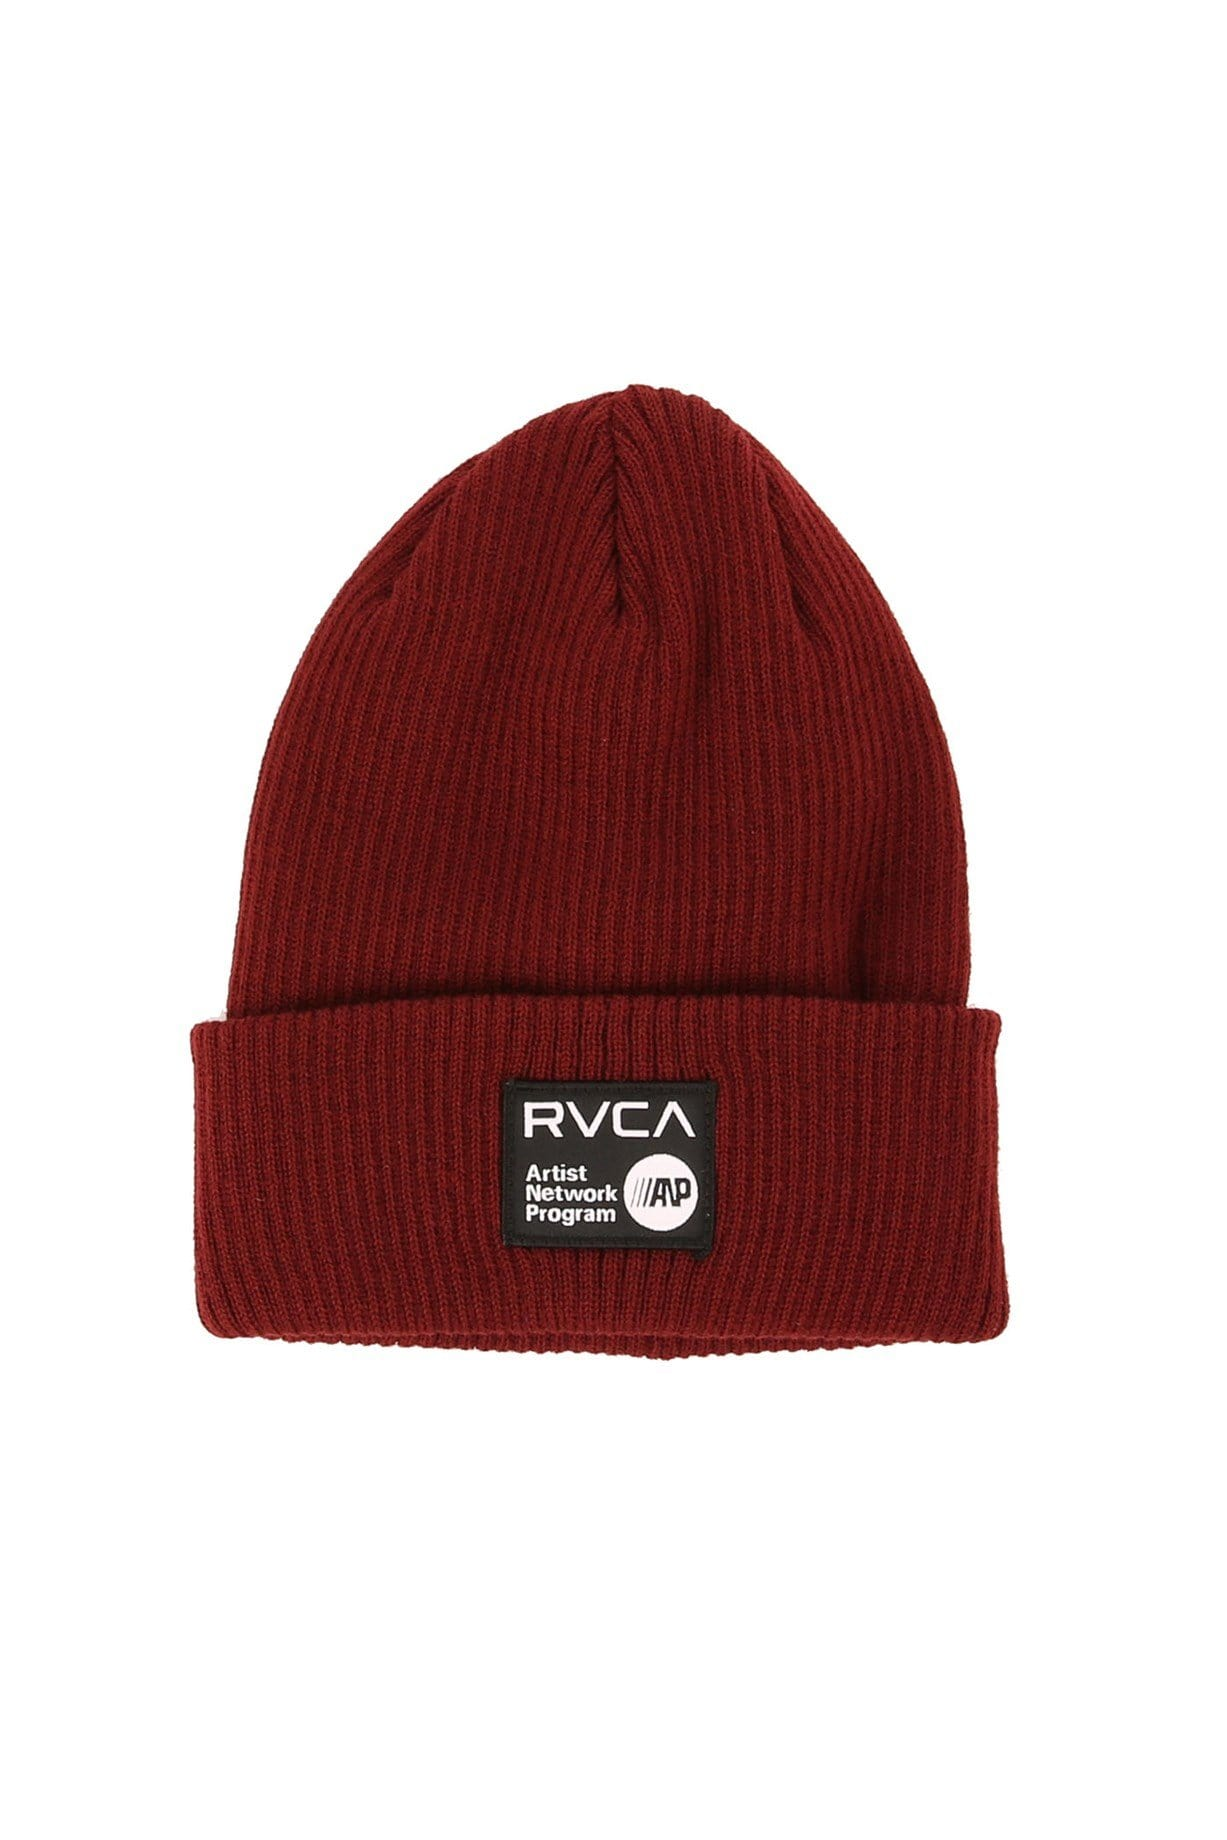 ANP Patch Beanie Bordeaux